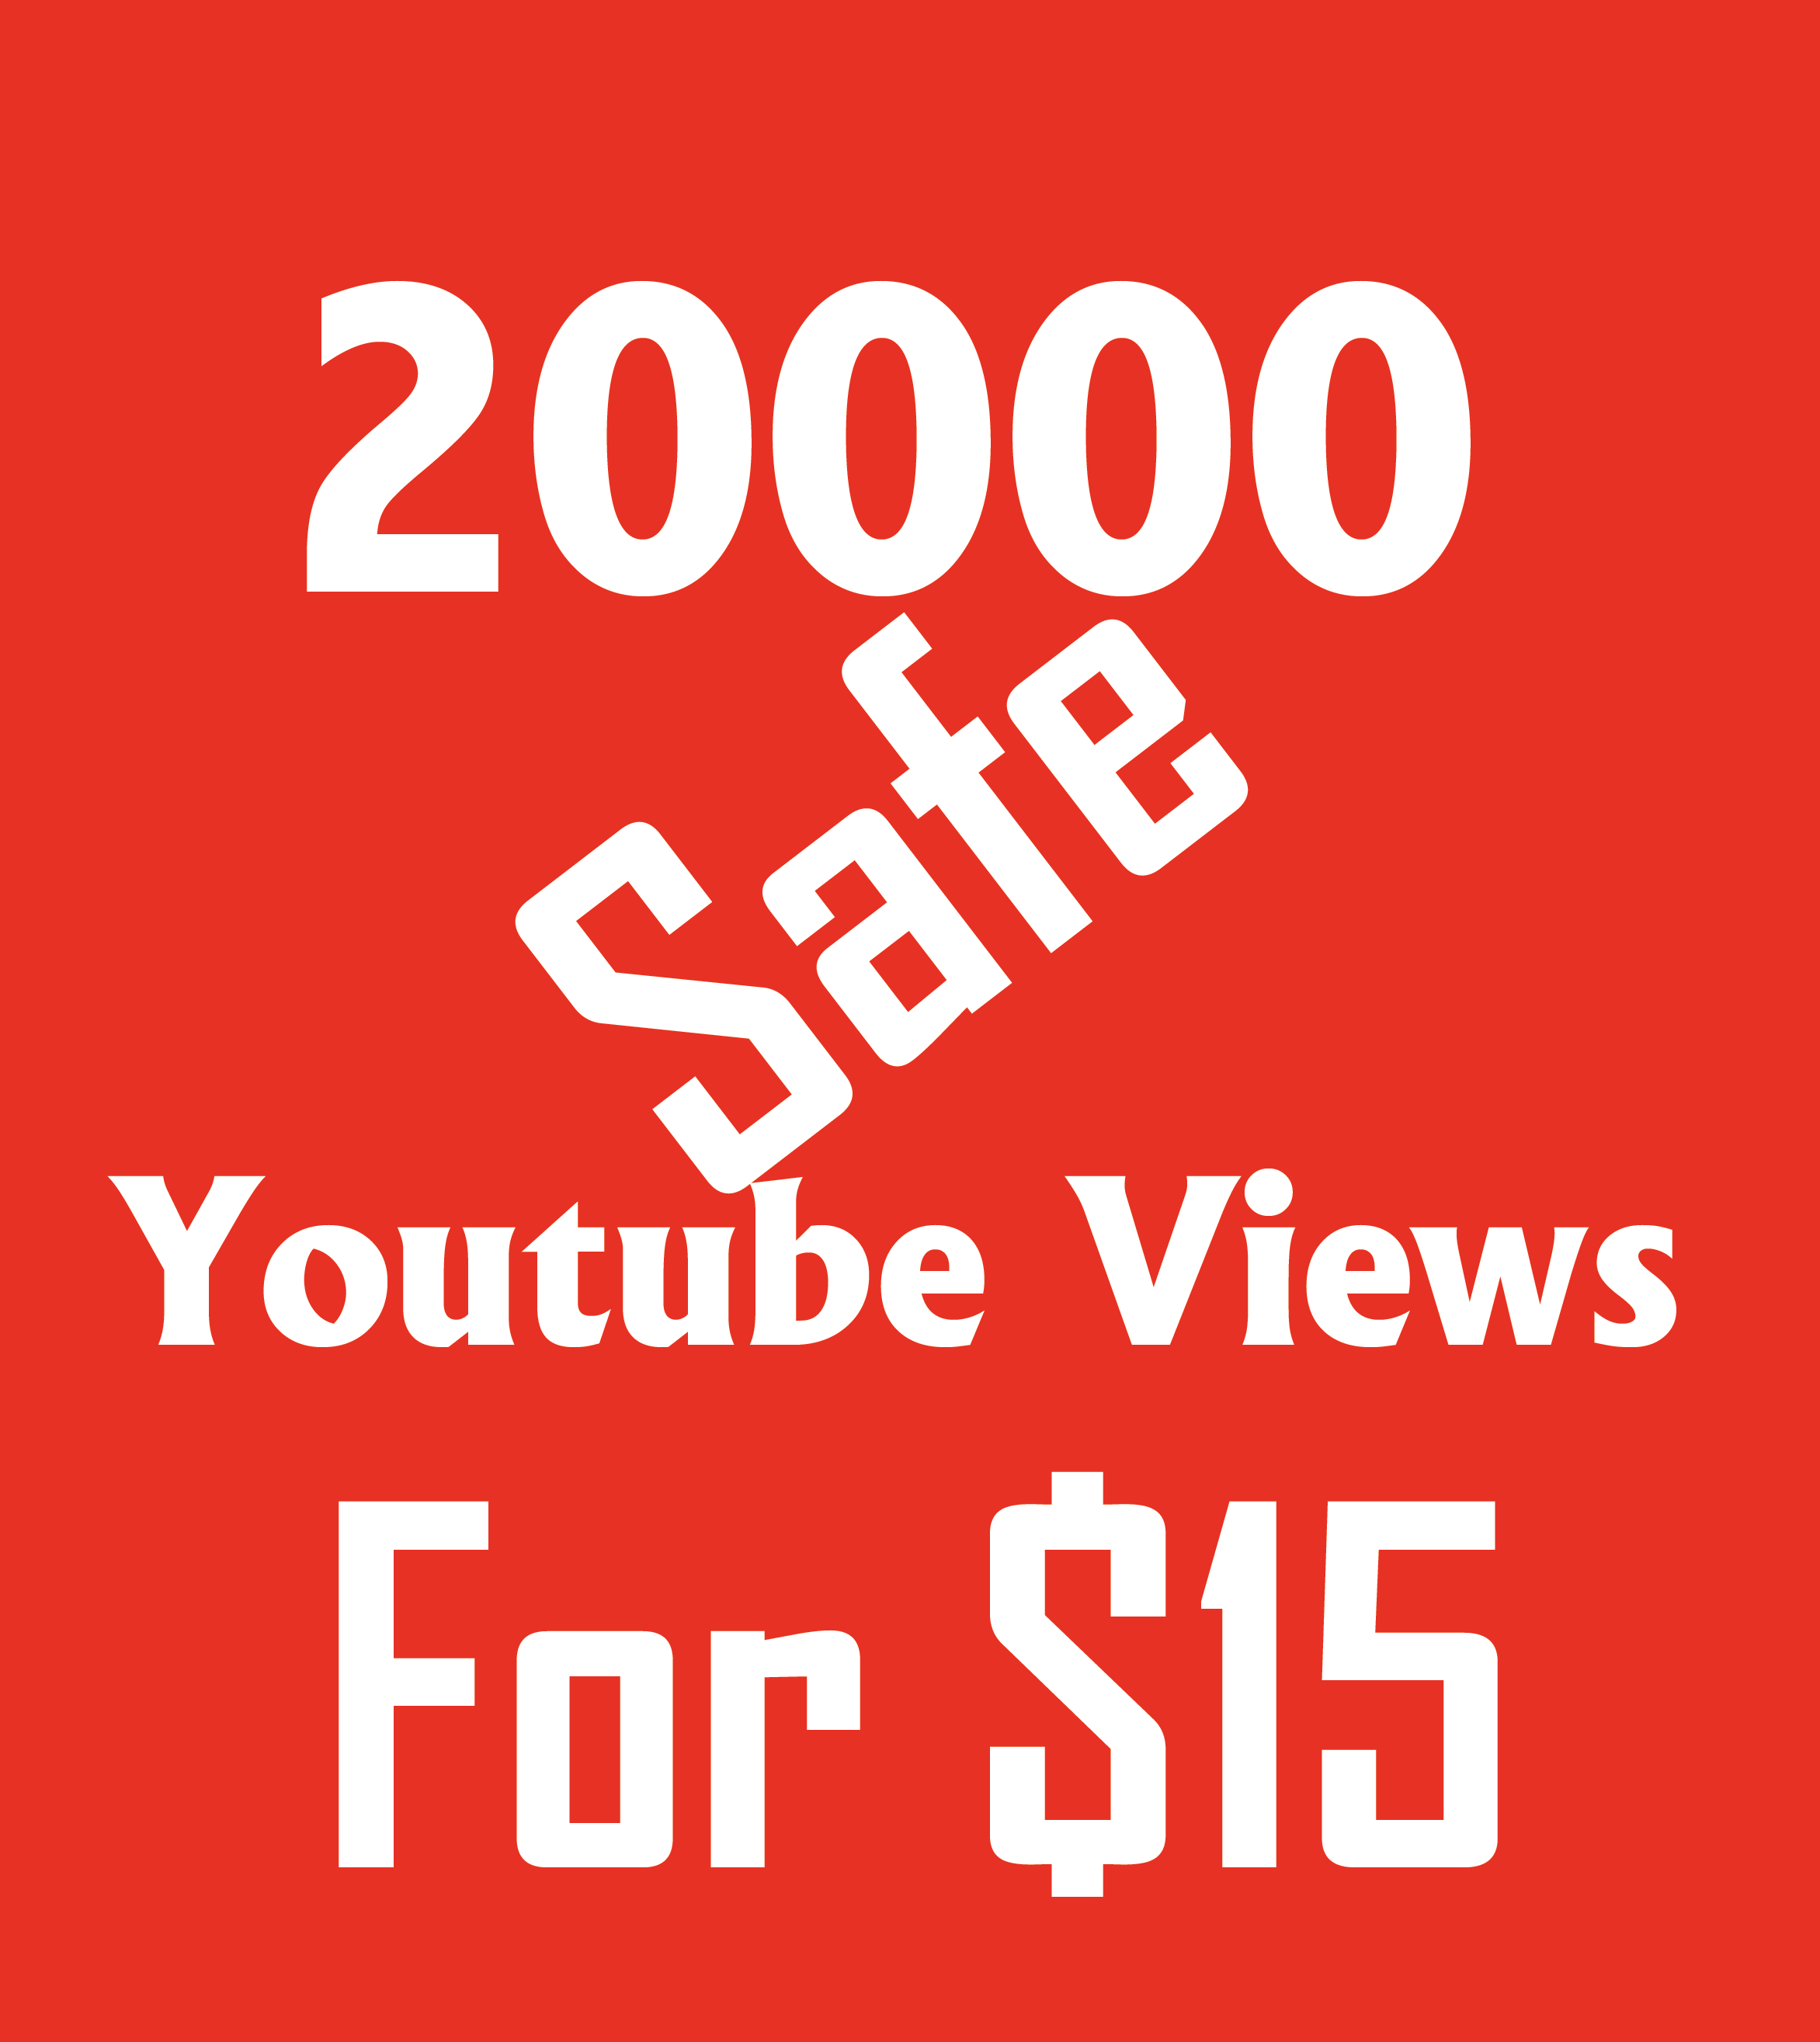 Fast service 20000 youtube vi-ews with 500 li-kes within 4-5 days only